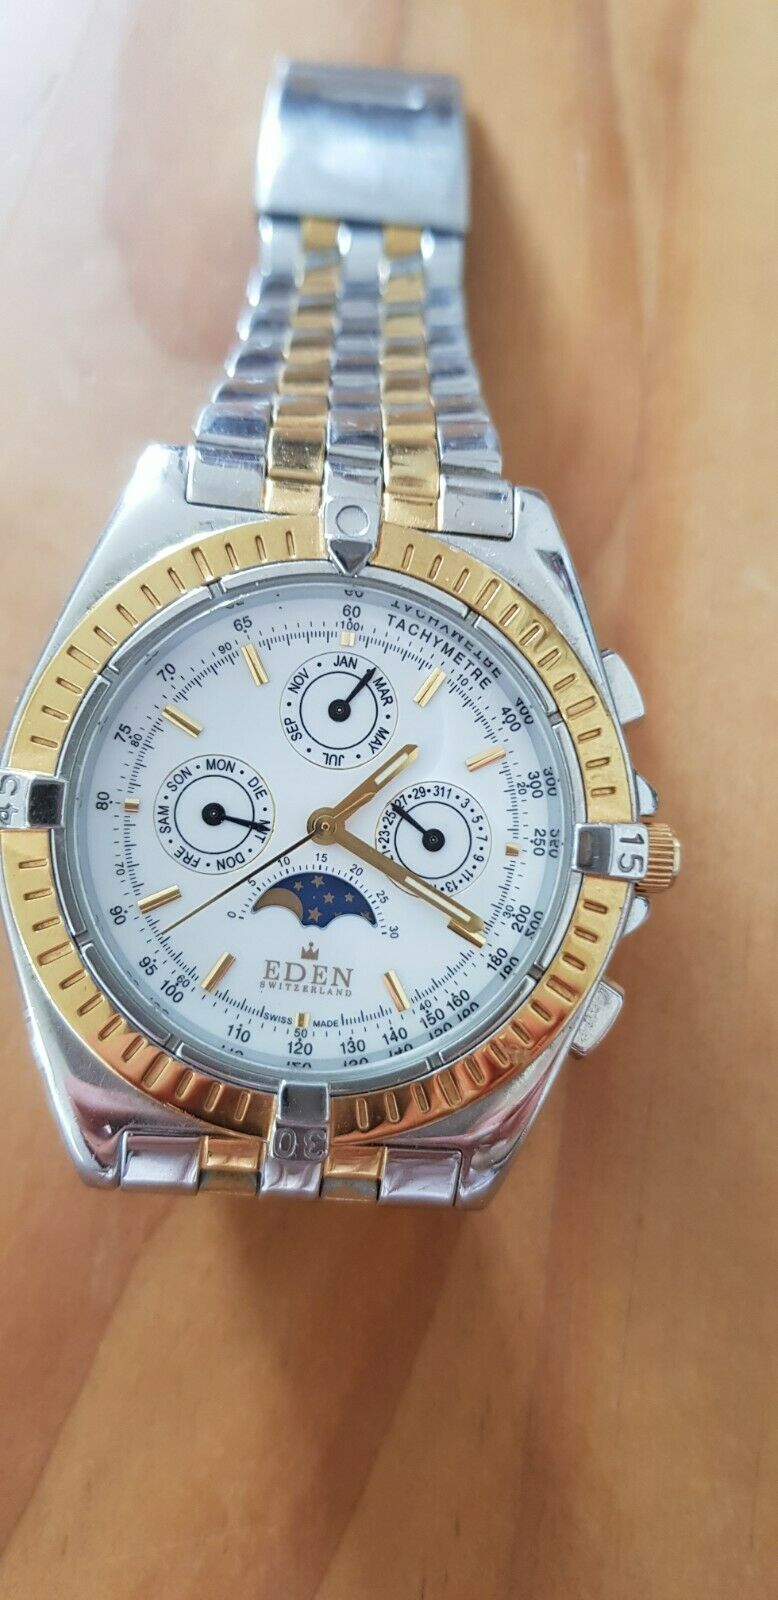 Eden Chronograph Stainless Steel Band